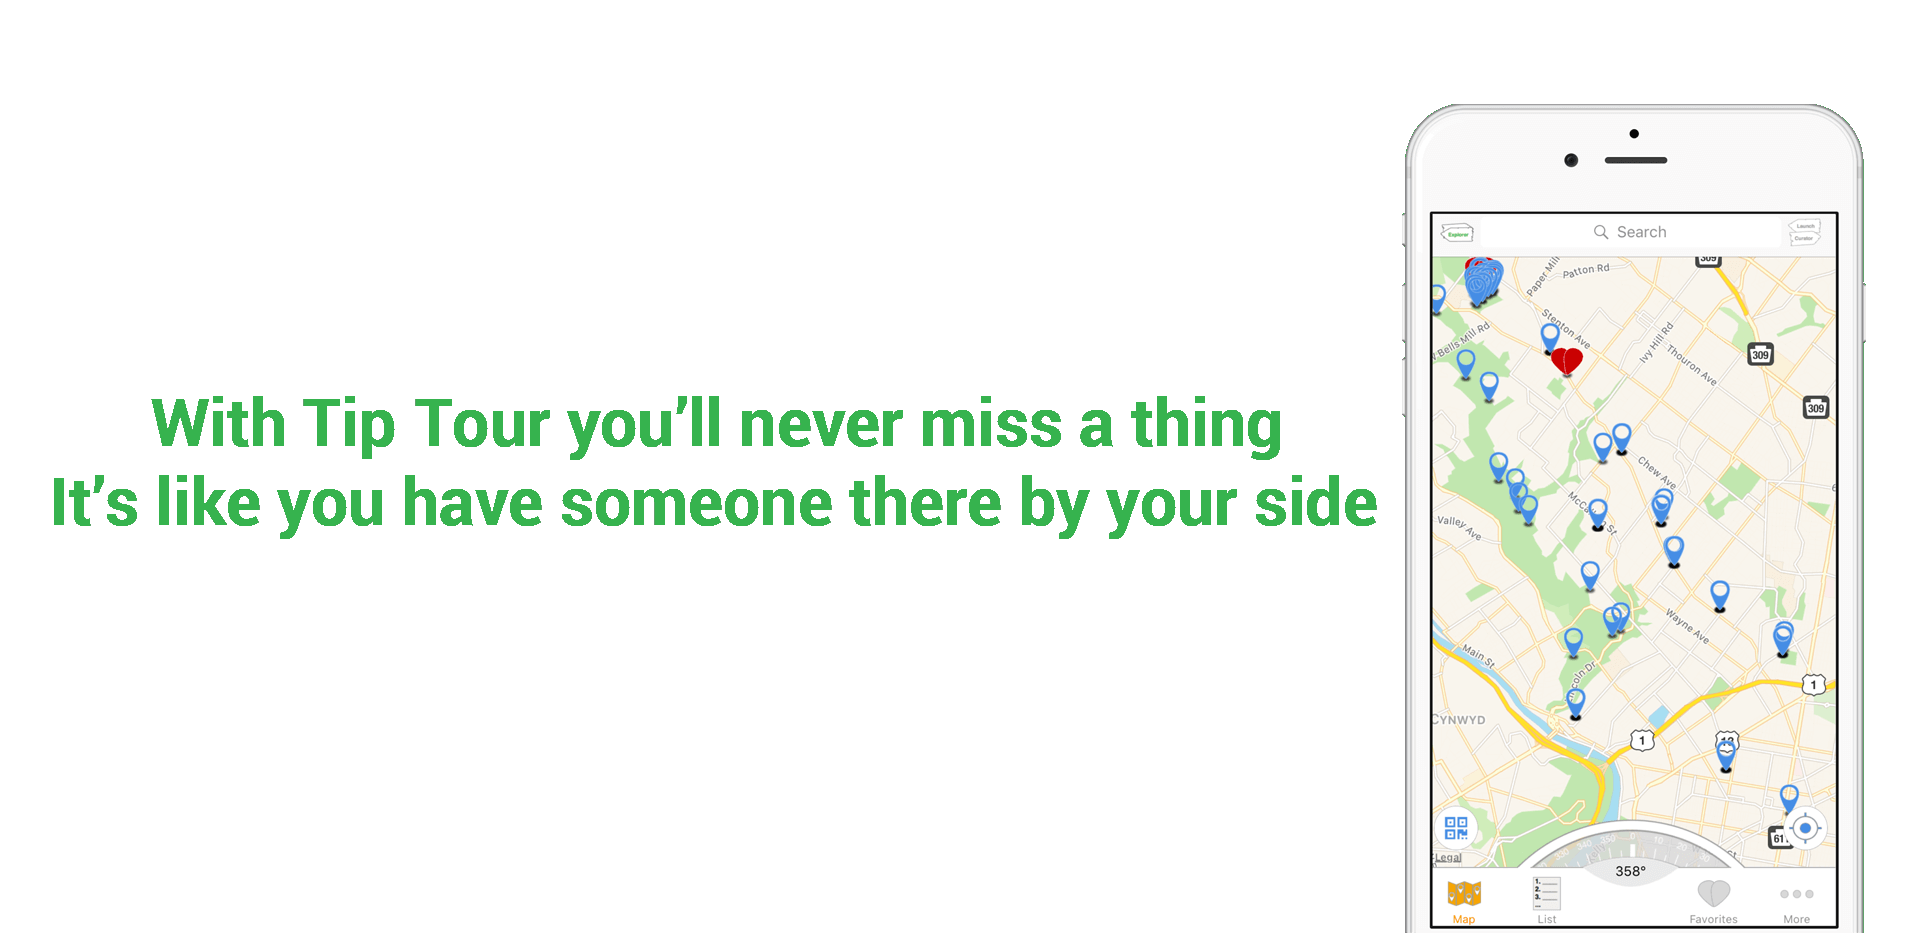 With TipTour you'll never miss a thing. It's like you have someone there by your side